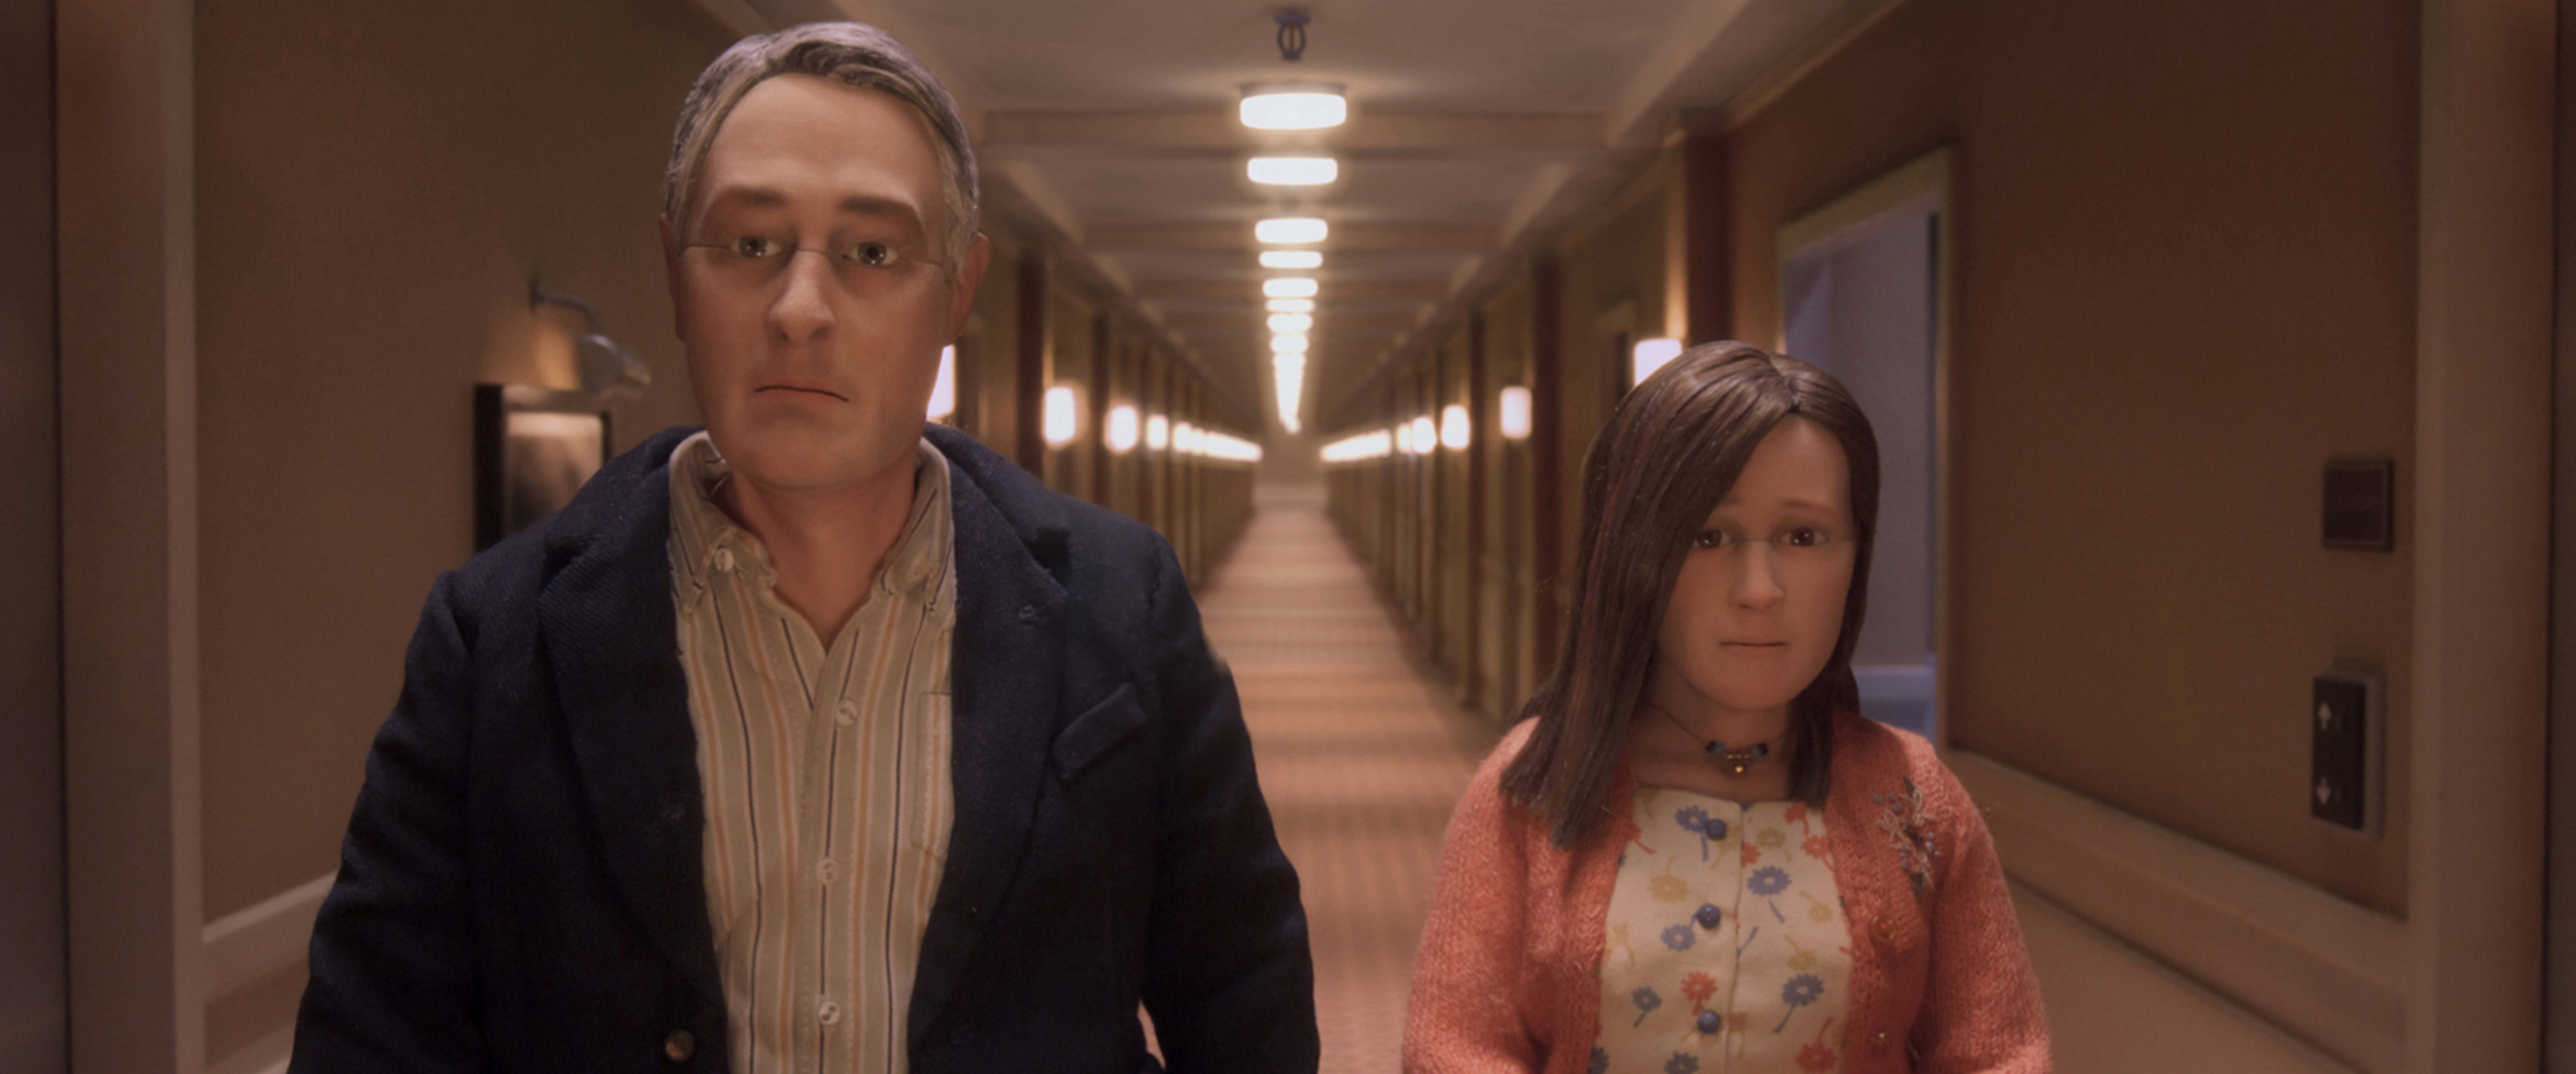 David Thewlis voices Michael Stone and Jennifer Jason Leigh voices Lisa in Anomalisa.